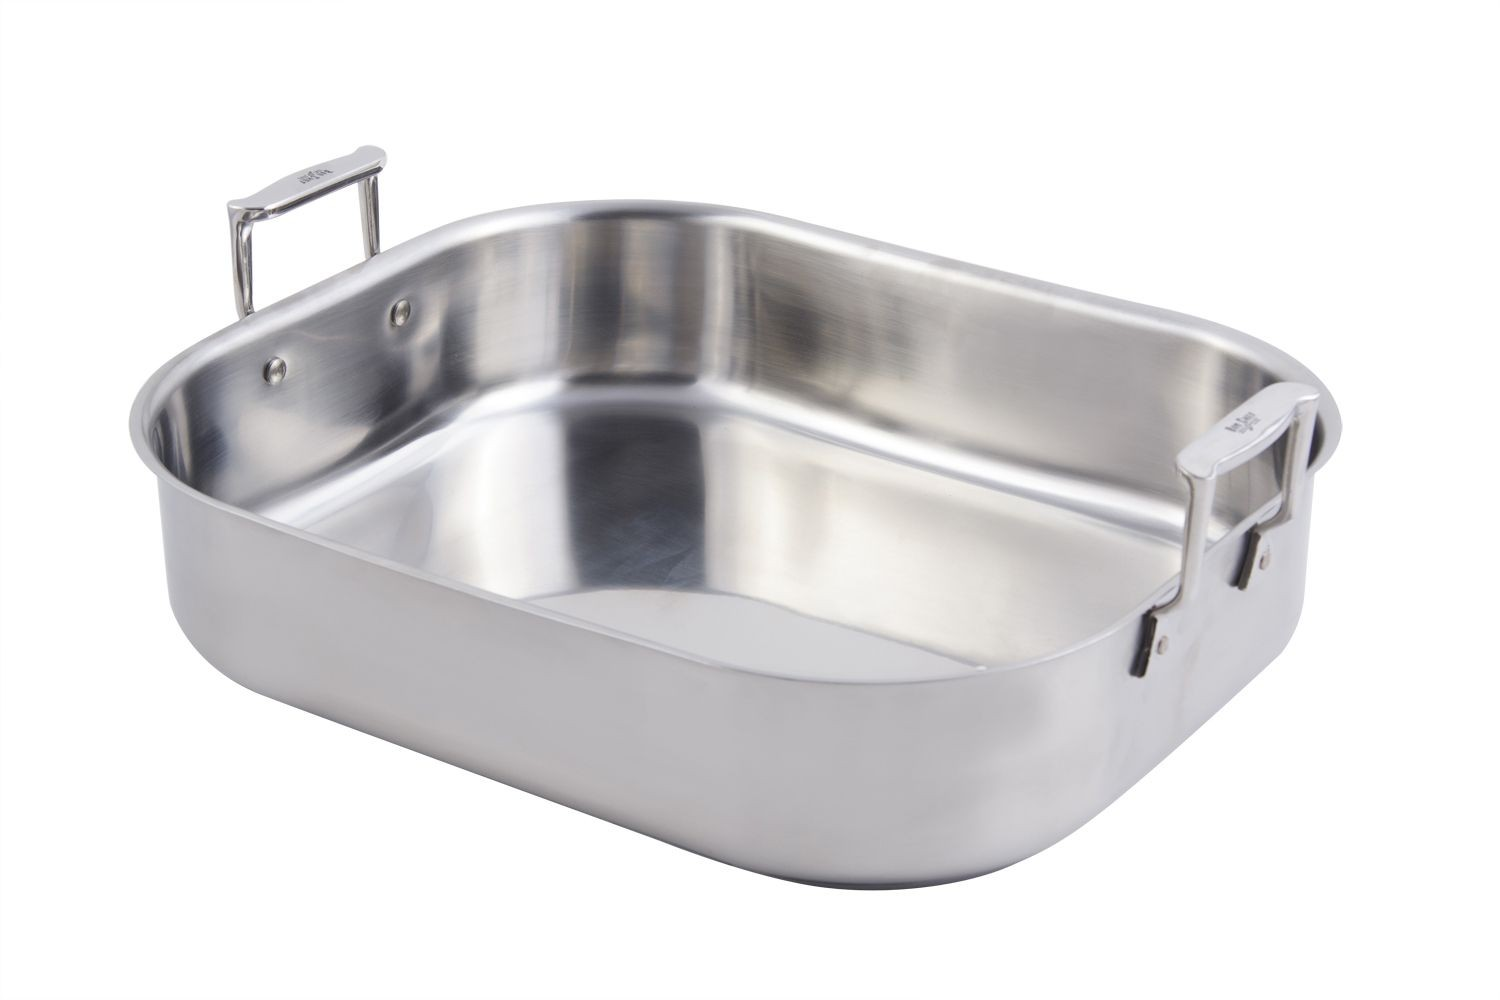 Bon Chef 60010CLD Cucina Stainless Steel Rotisserie Pan, 10 Qt.